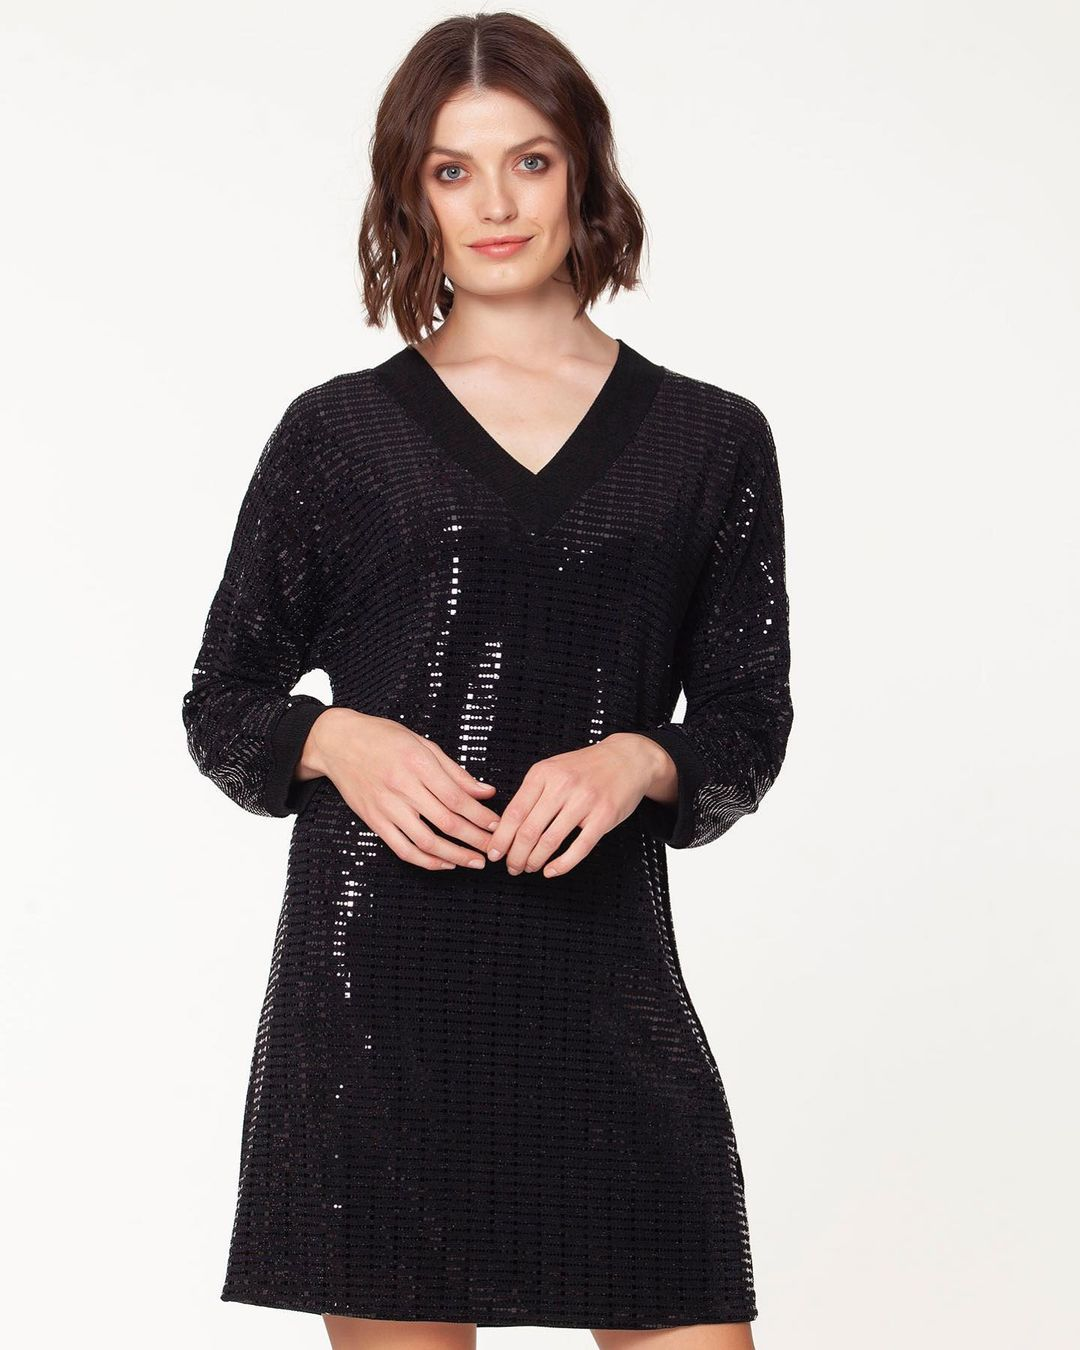 Gresey Style Short Sequin Dress with Long Sleeves